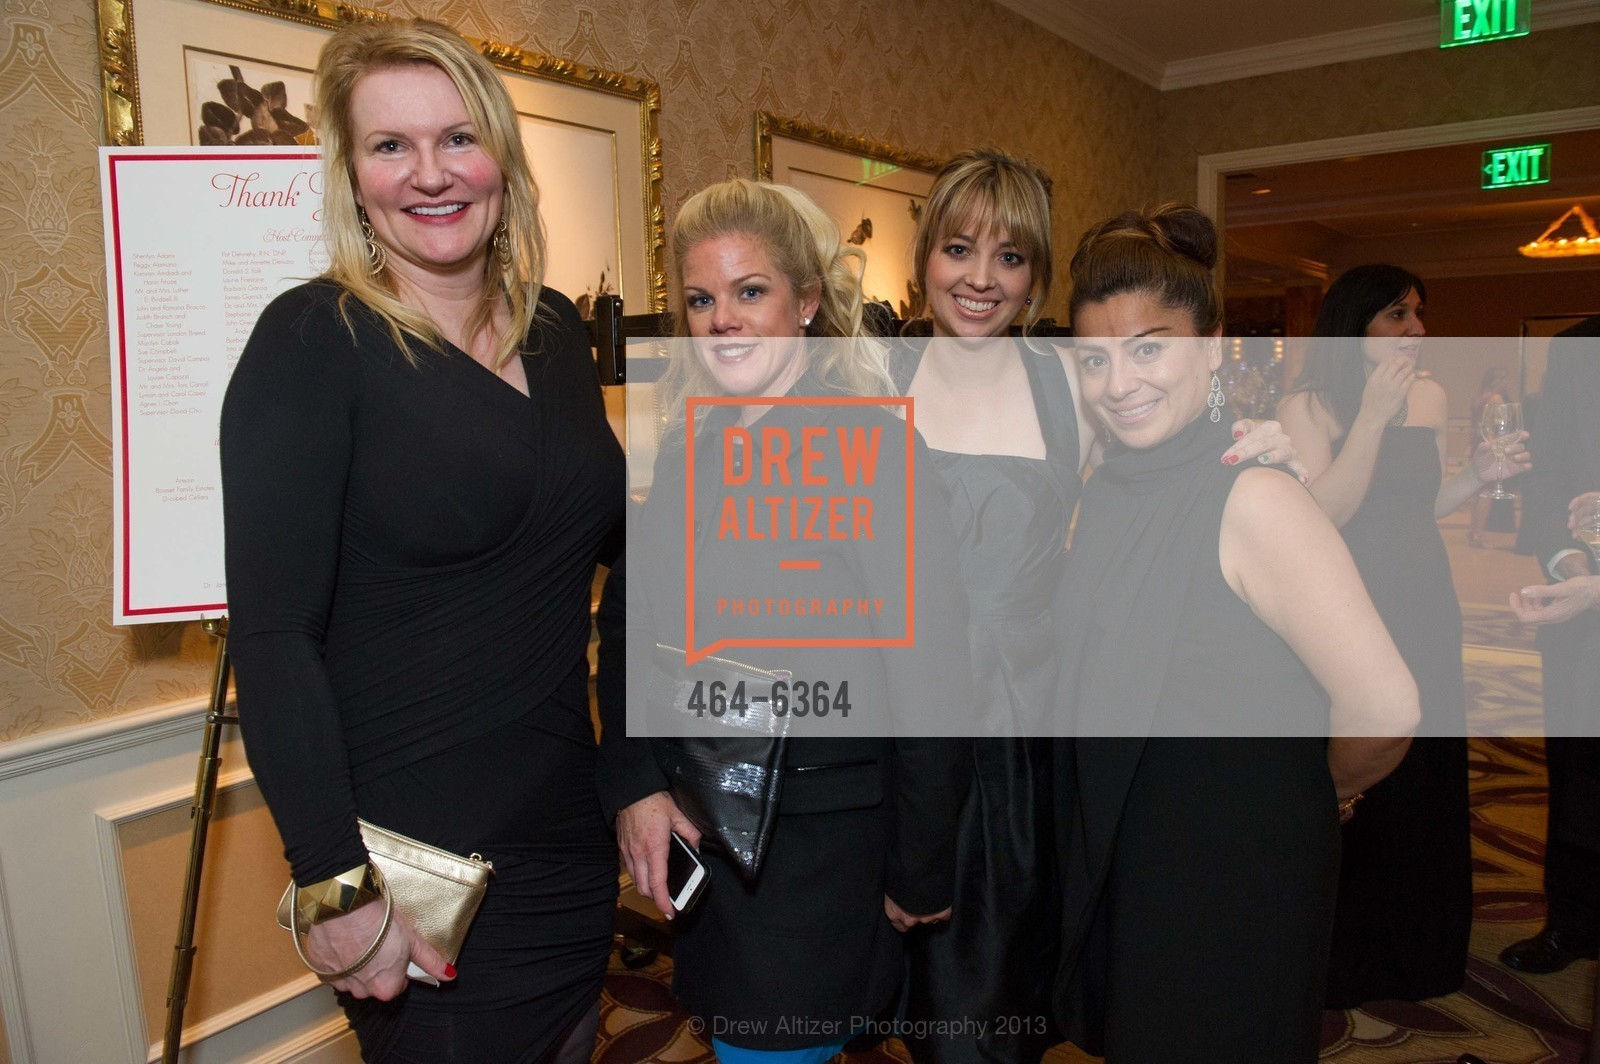 Suzanne Pardino, Theresa Edison, Megan White, Maggie Morillo, 25th Anniversary Holiday HOB NOB ON THE HILL, US, December 6th, 2013,Drew Altizer, Drew Altizer Photography, full-service agency, private events, San Francisco photographer, photographer california